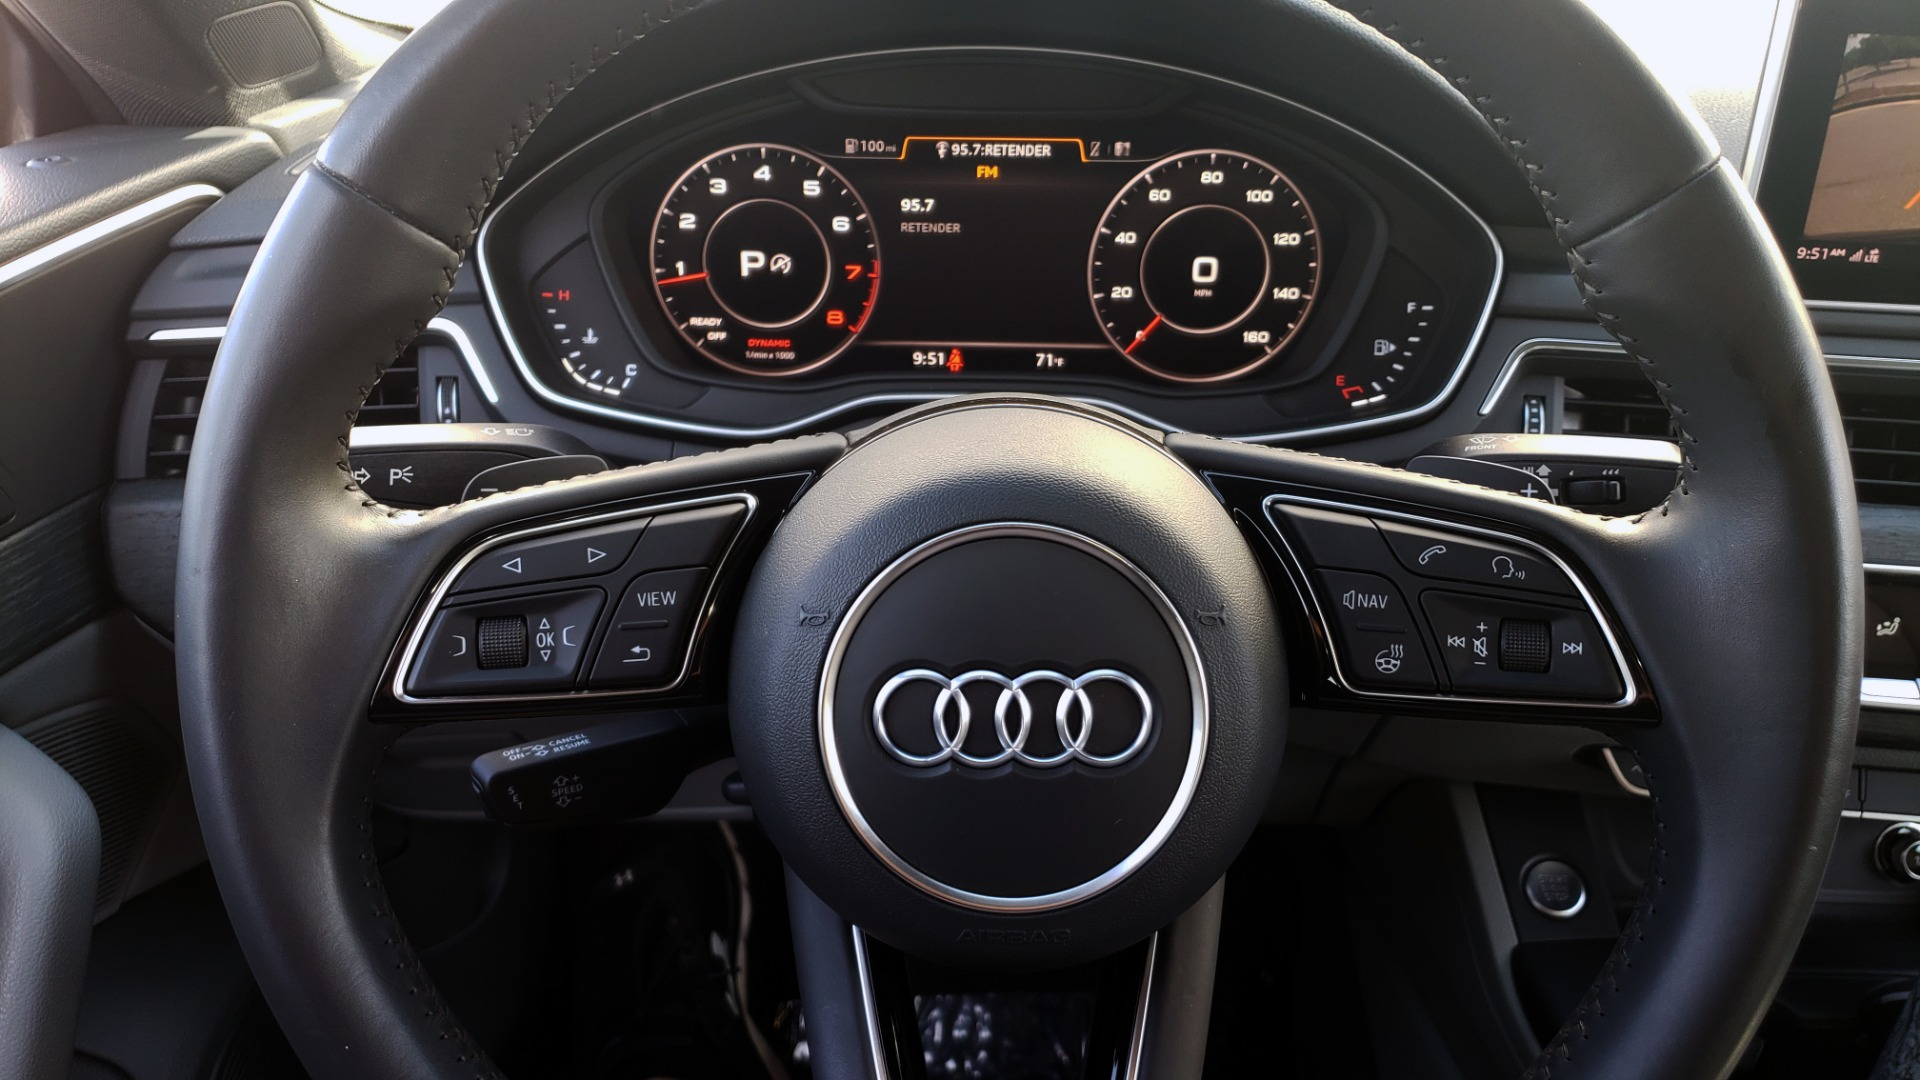 Used 2018 Audi A5 SPORTBACK PREMIUM PLUS 2.0T / AWD / NAV / B&O SND / SUNROOF / REARVIEW for sale Sold at Formula Imports in Charlotte NC 28227 41